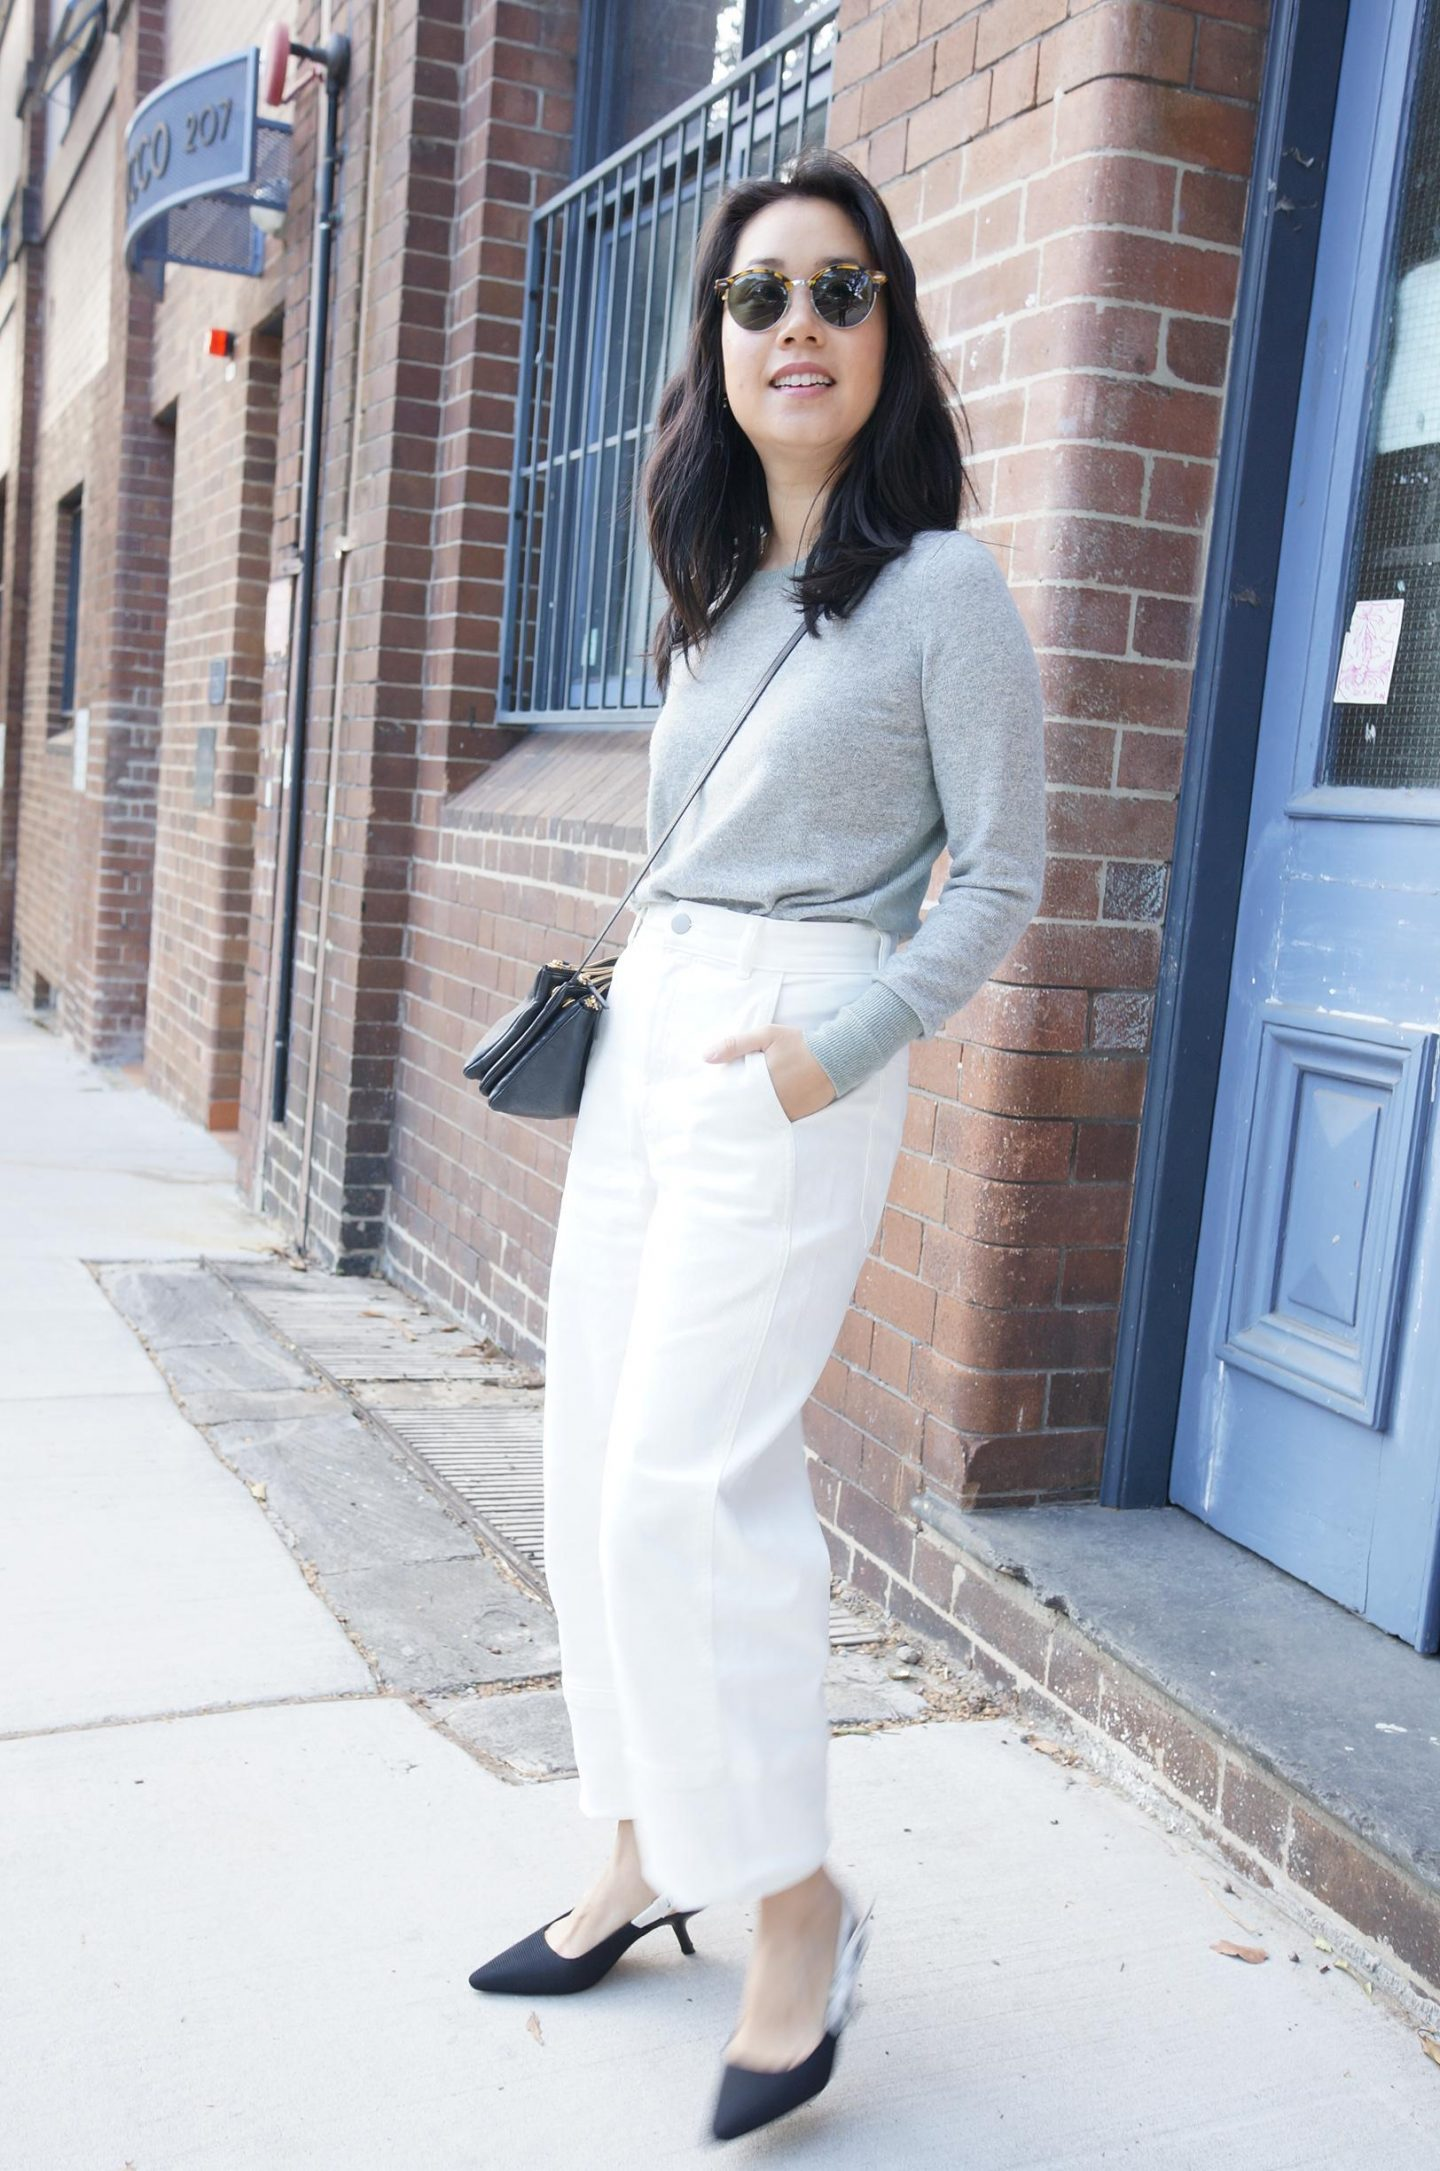 everlane barrel pant in blog post about everlane favourites of 2020